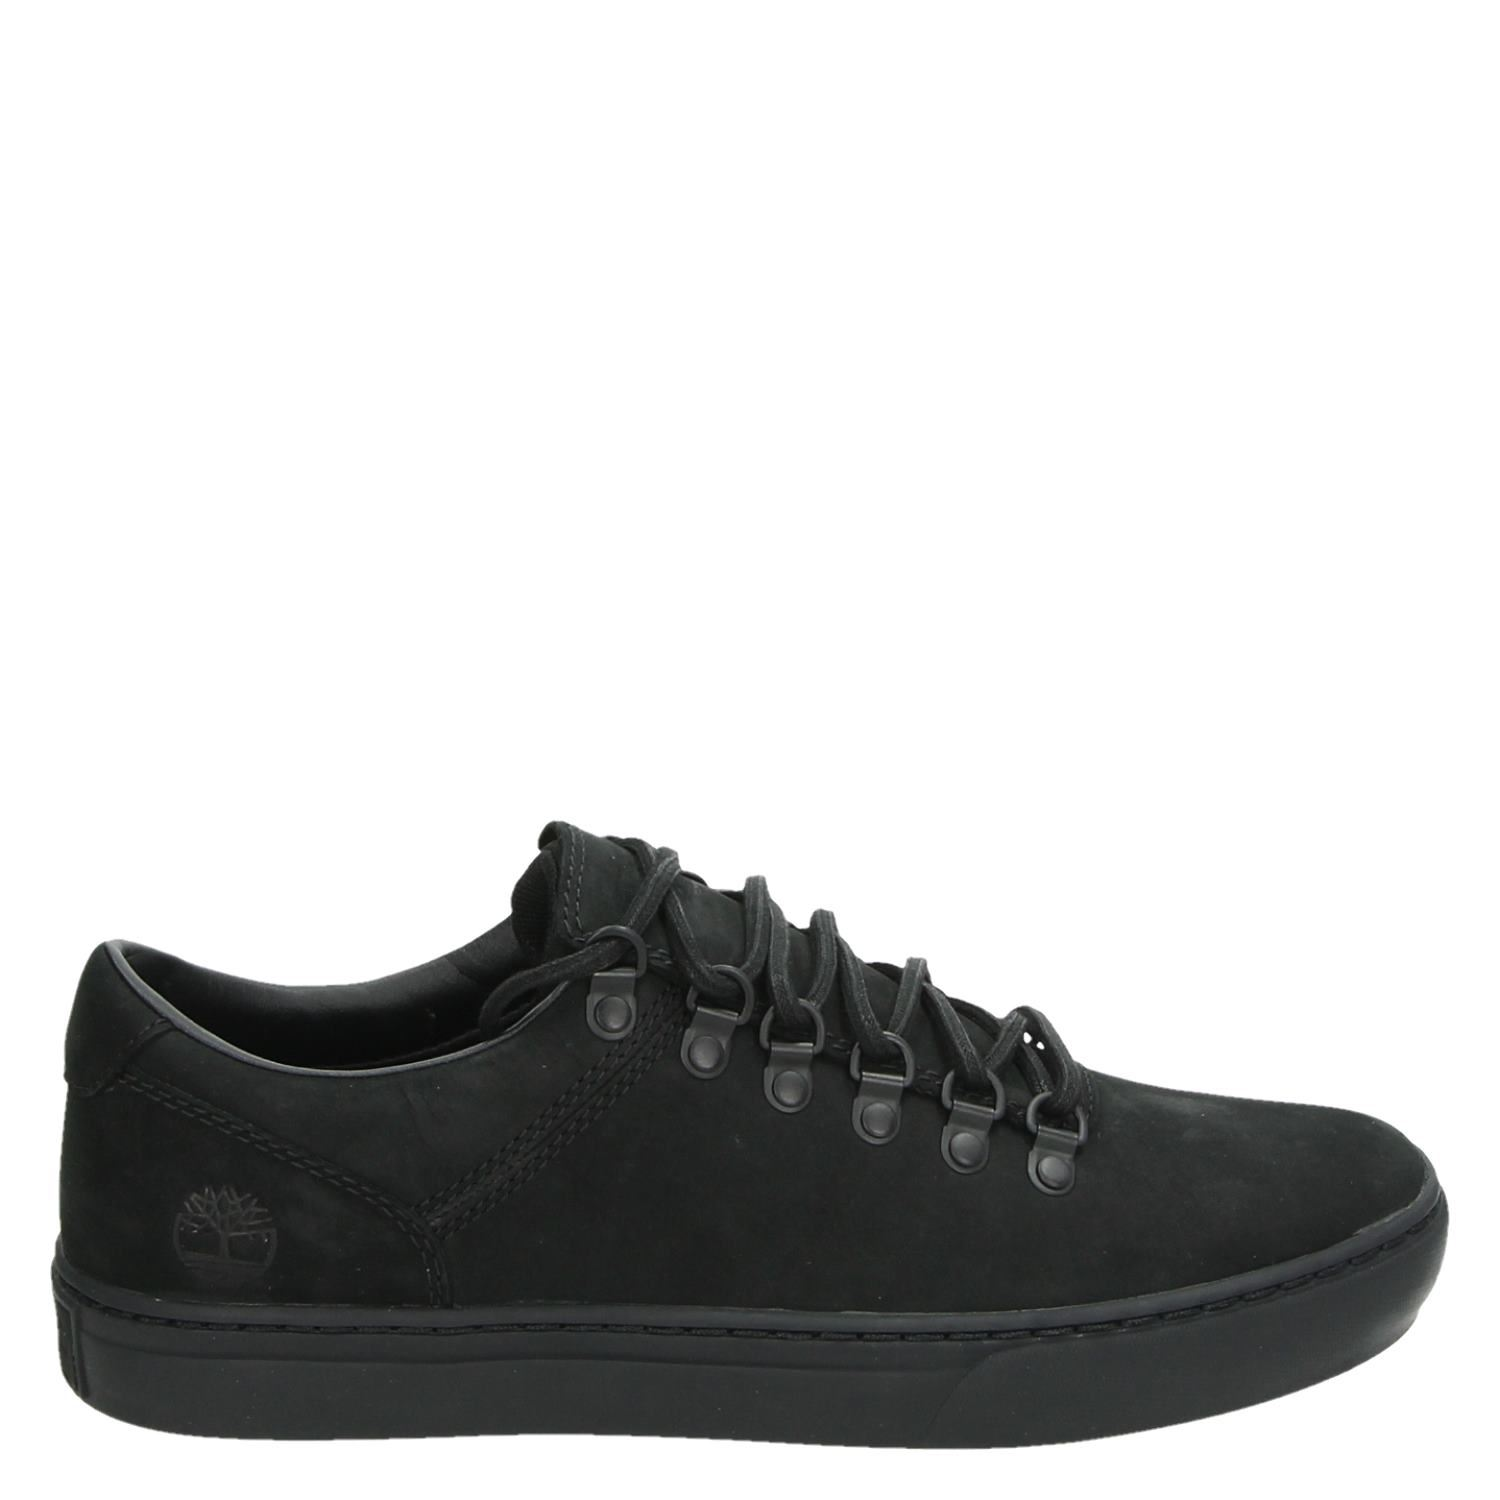 Timberland Chaussures En Dentelle Noire - Hommes - Taille 47 3IBRV